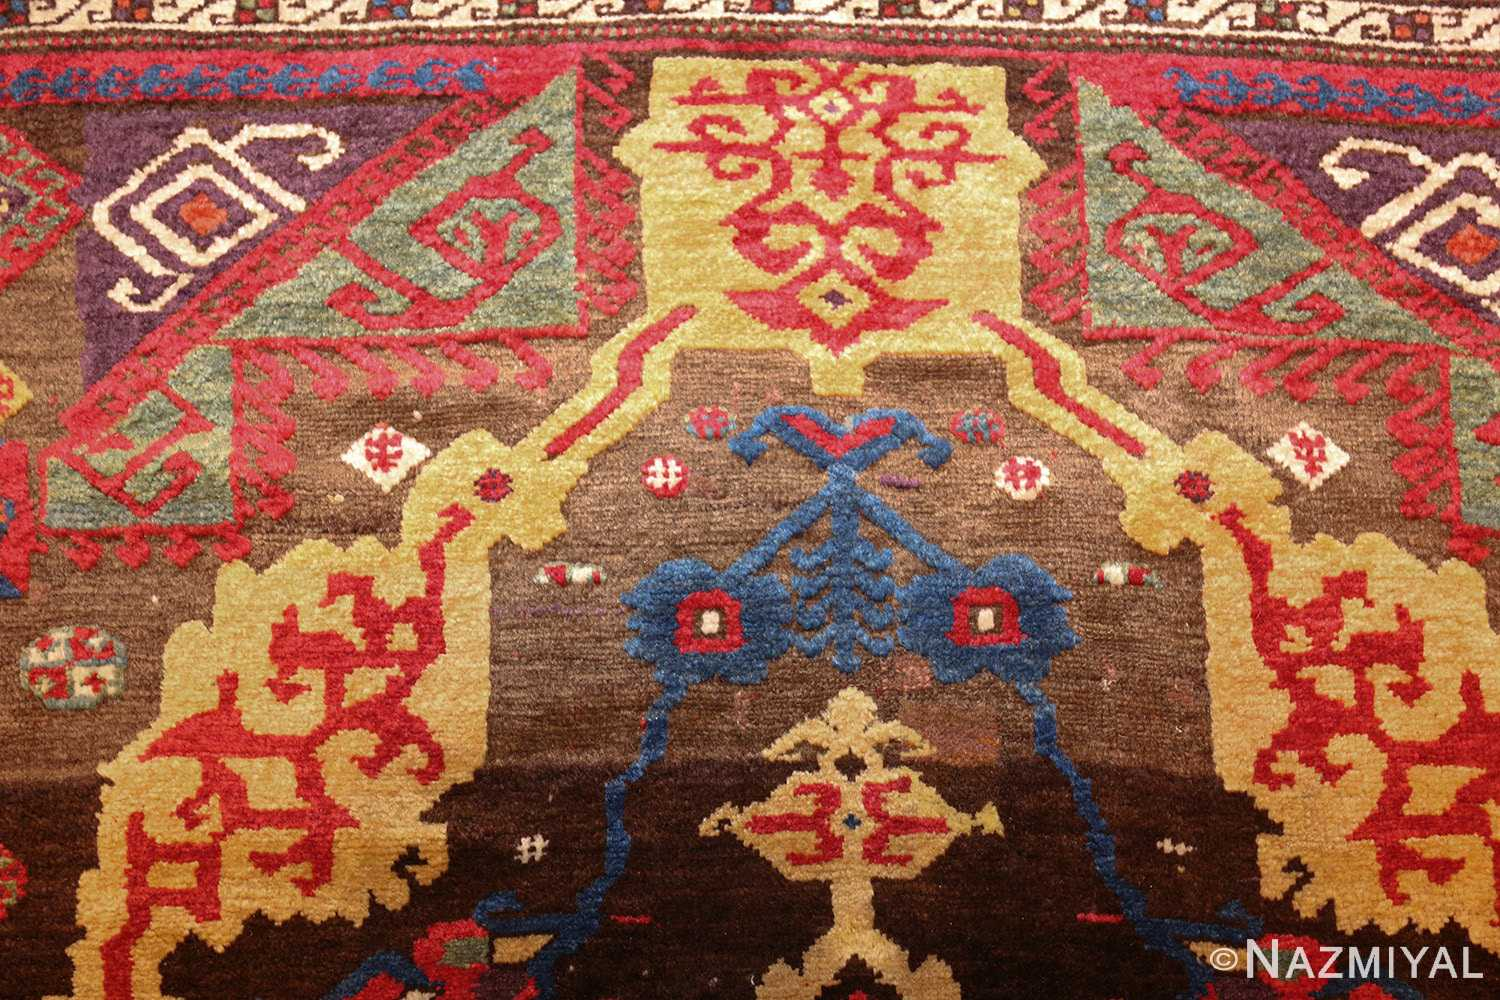 18th century turkish rug from james ballard 47373 top Nazmiyal